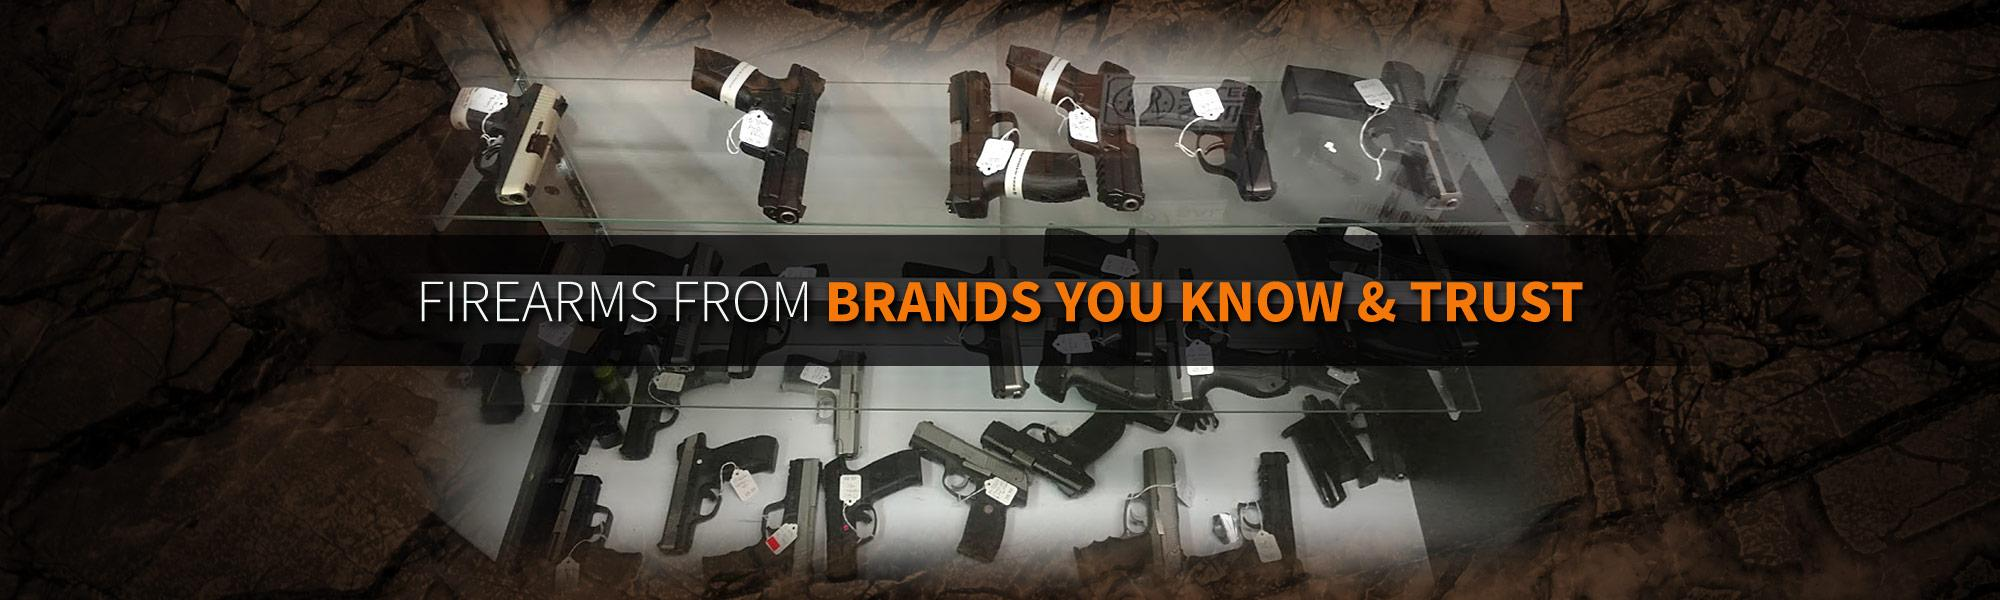 Firearms From Brands You Know & Trust